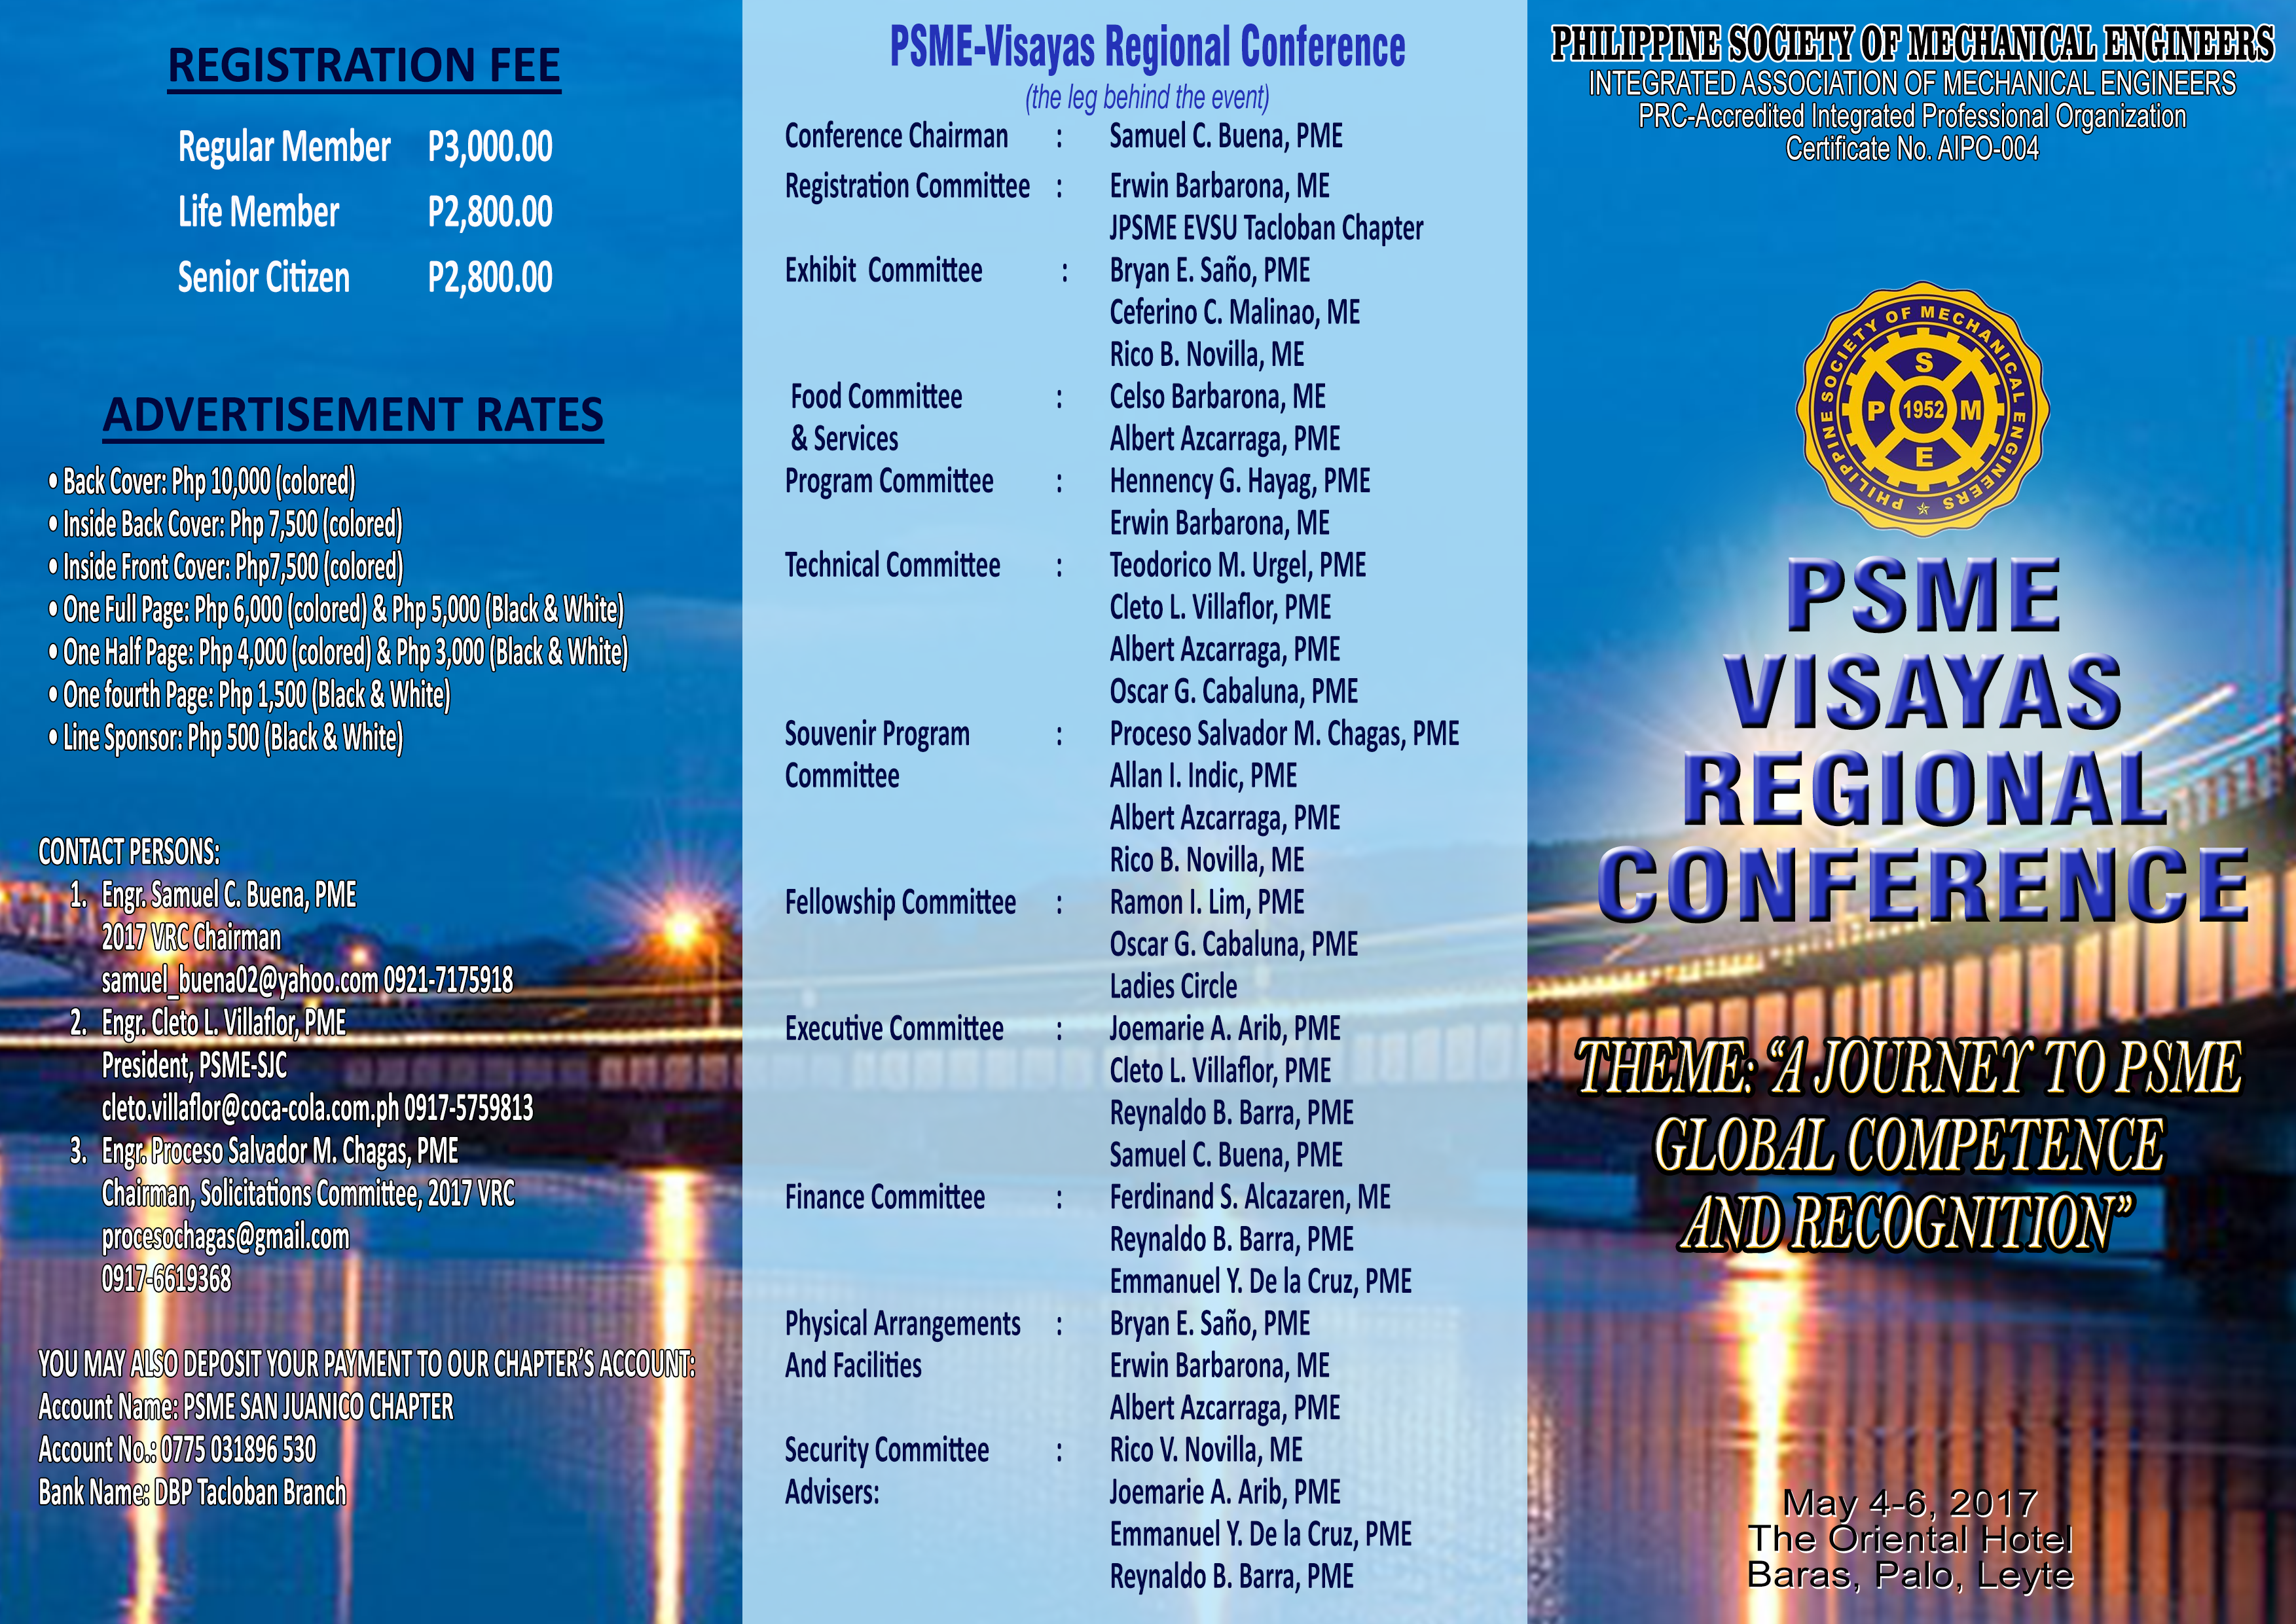 visayas regional conference philippine society of mechanical